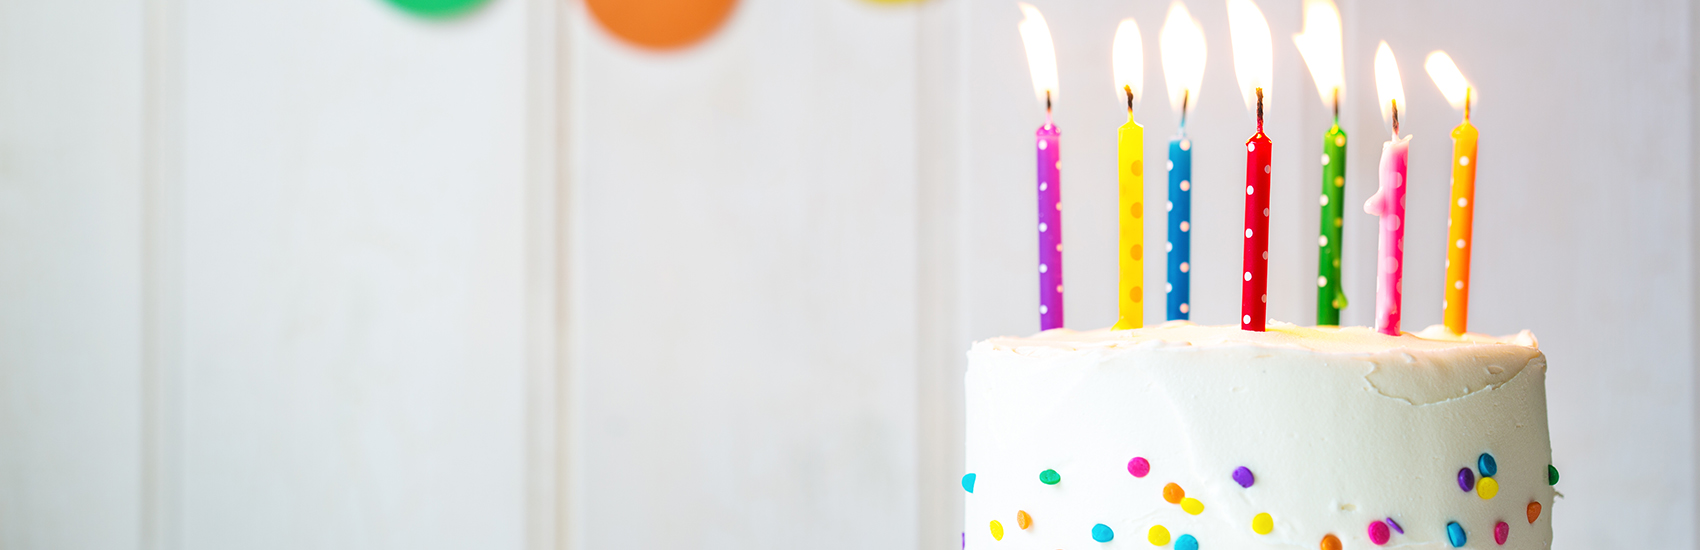 Make A Birthday Wish For Children